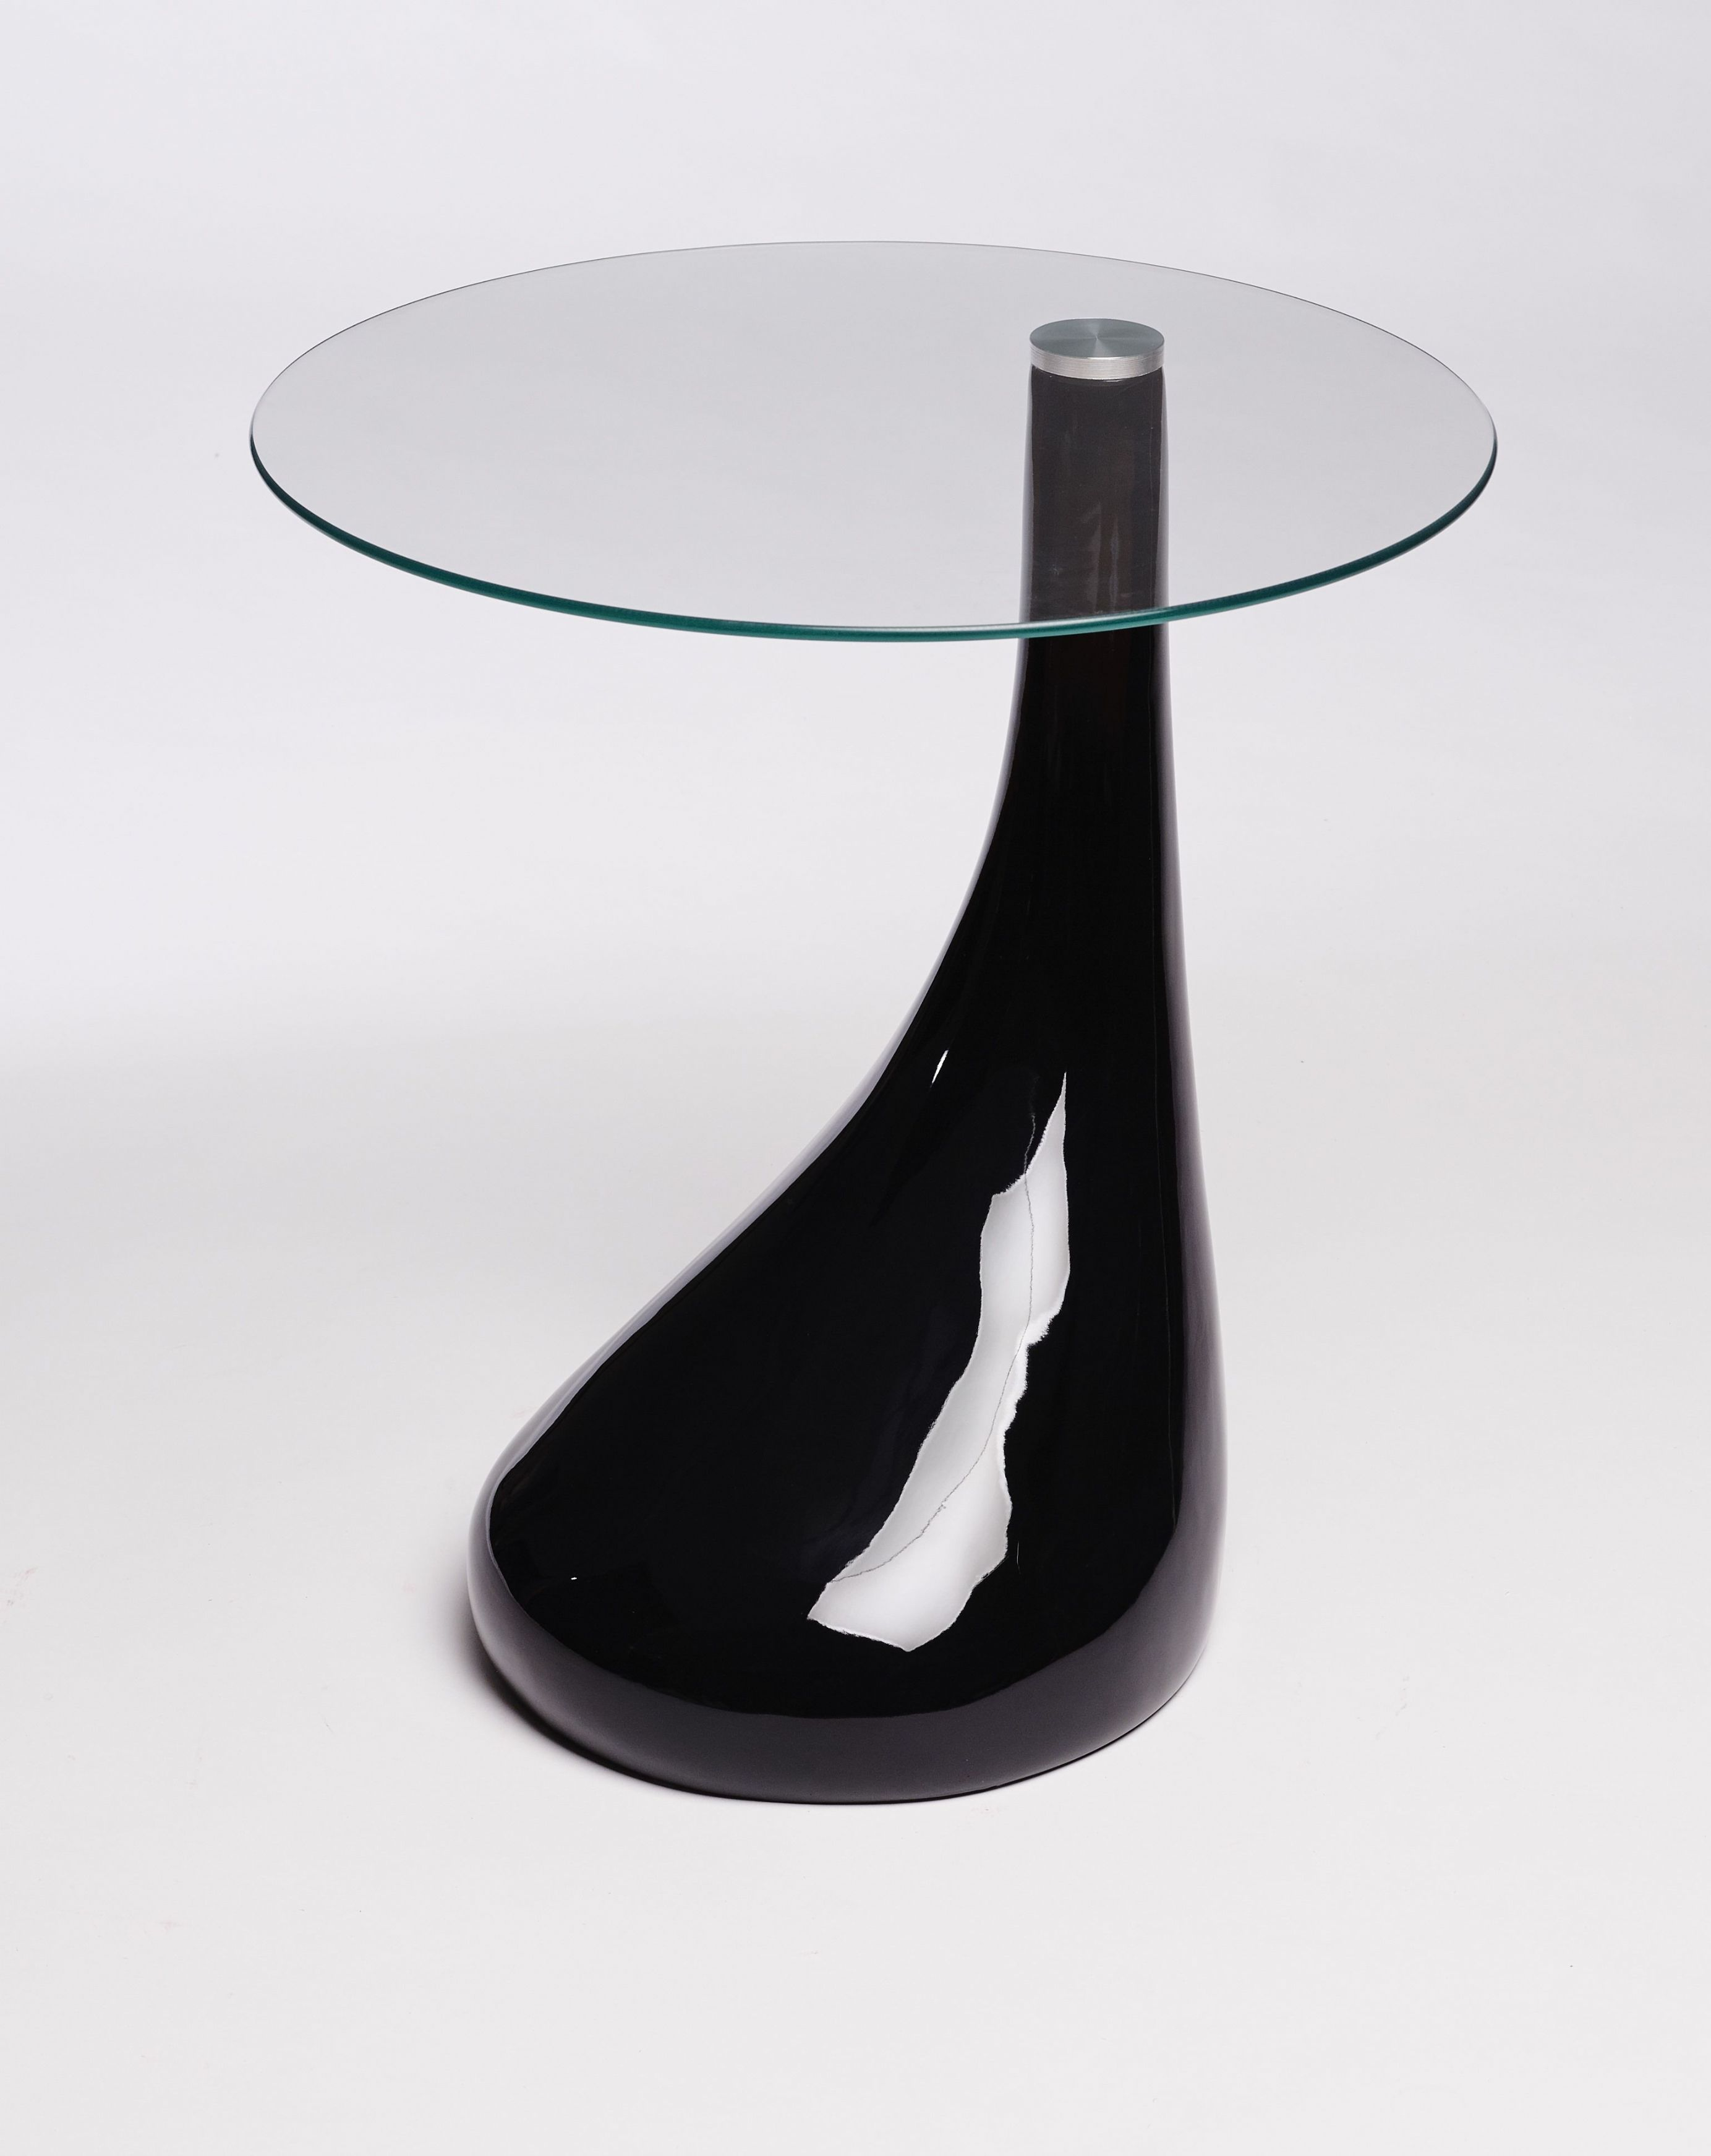 Charmant Black Side Table With Glass Top #moderndesign Modern Side Table  #blackdesign Black Side Table